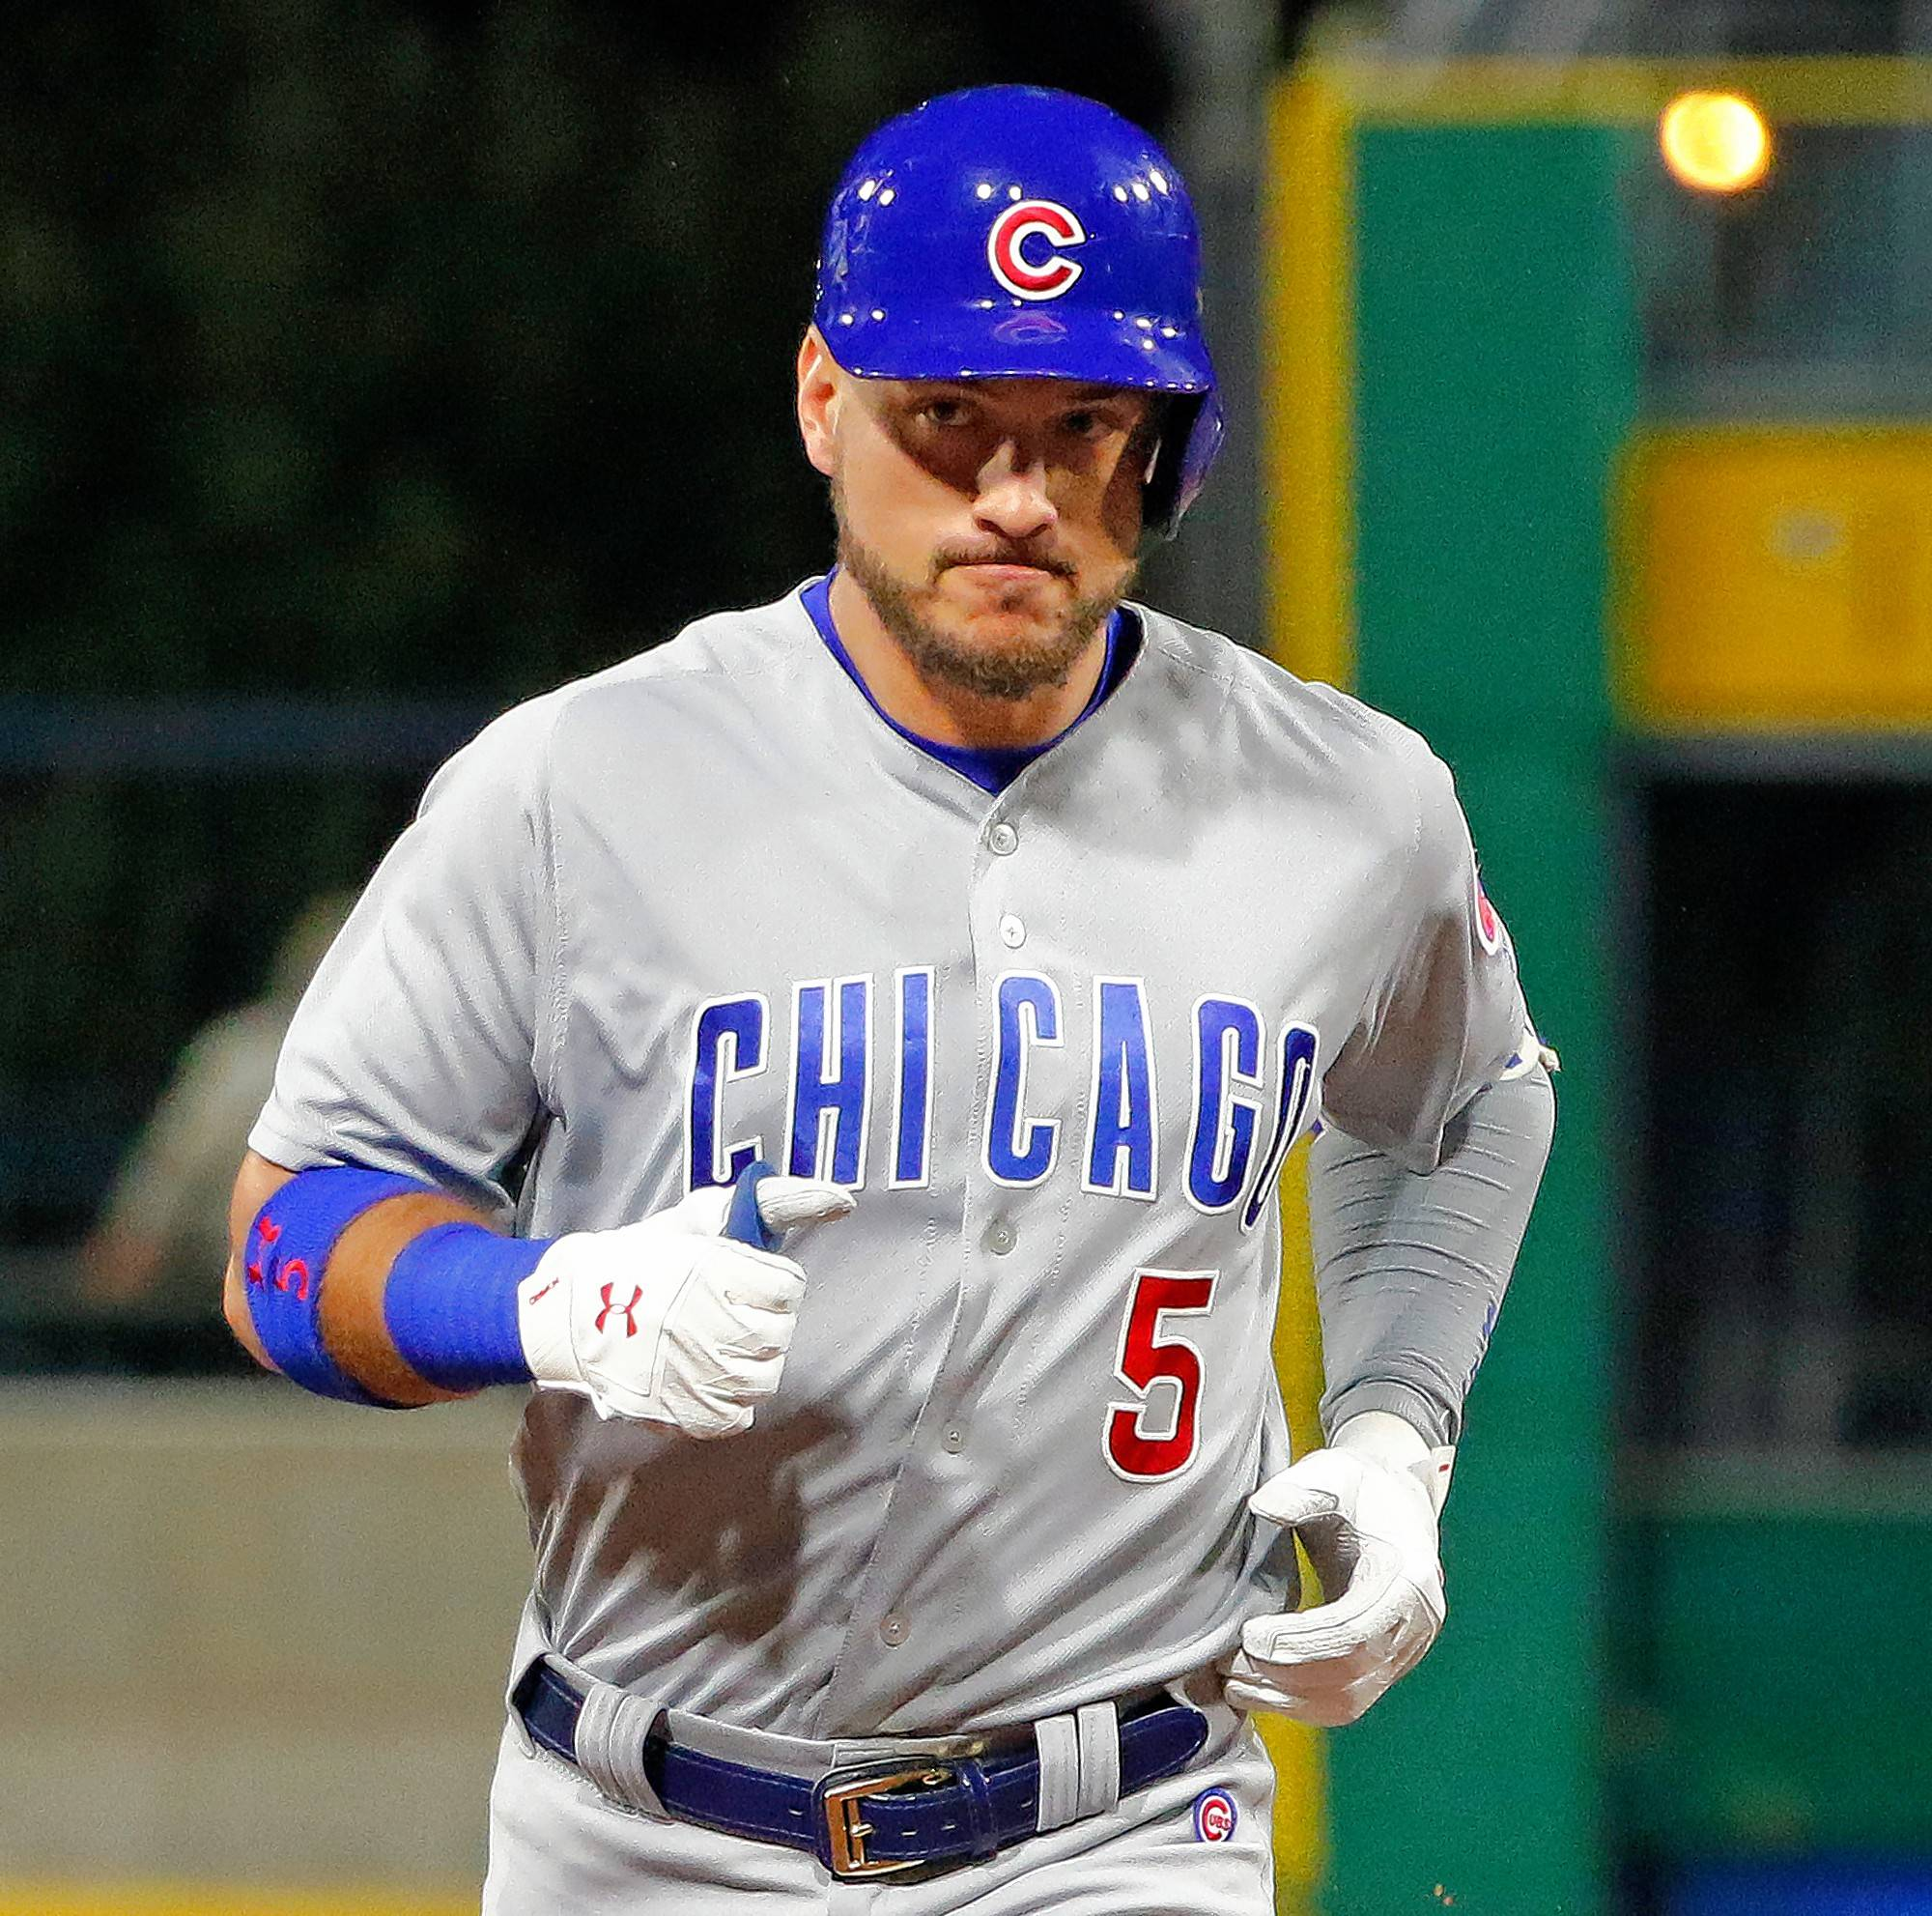 Members of the Cubs with ties to Florida including outfielder Albert Almora Jr., and Joe Maddon are doing what they can to cope with the onset of Hurricane Irma.